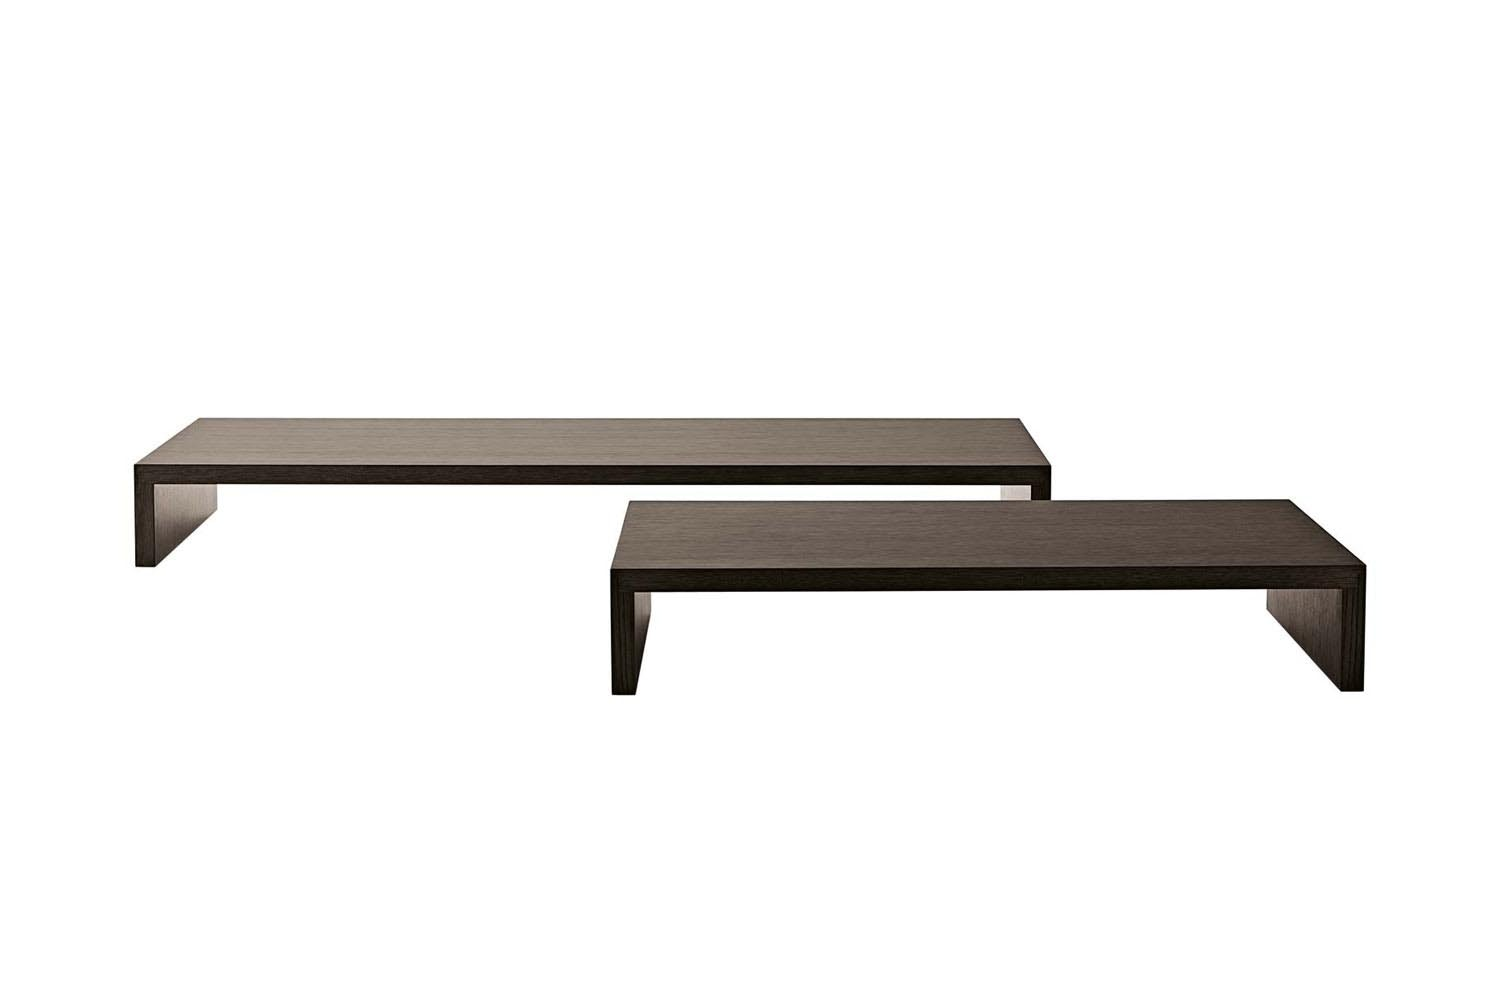 Pab '05 Bench by Studio Kairos for B&B Italia